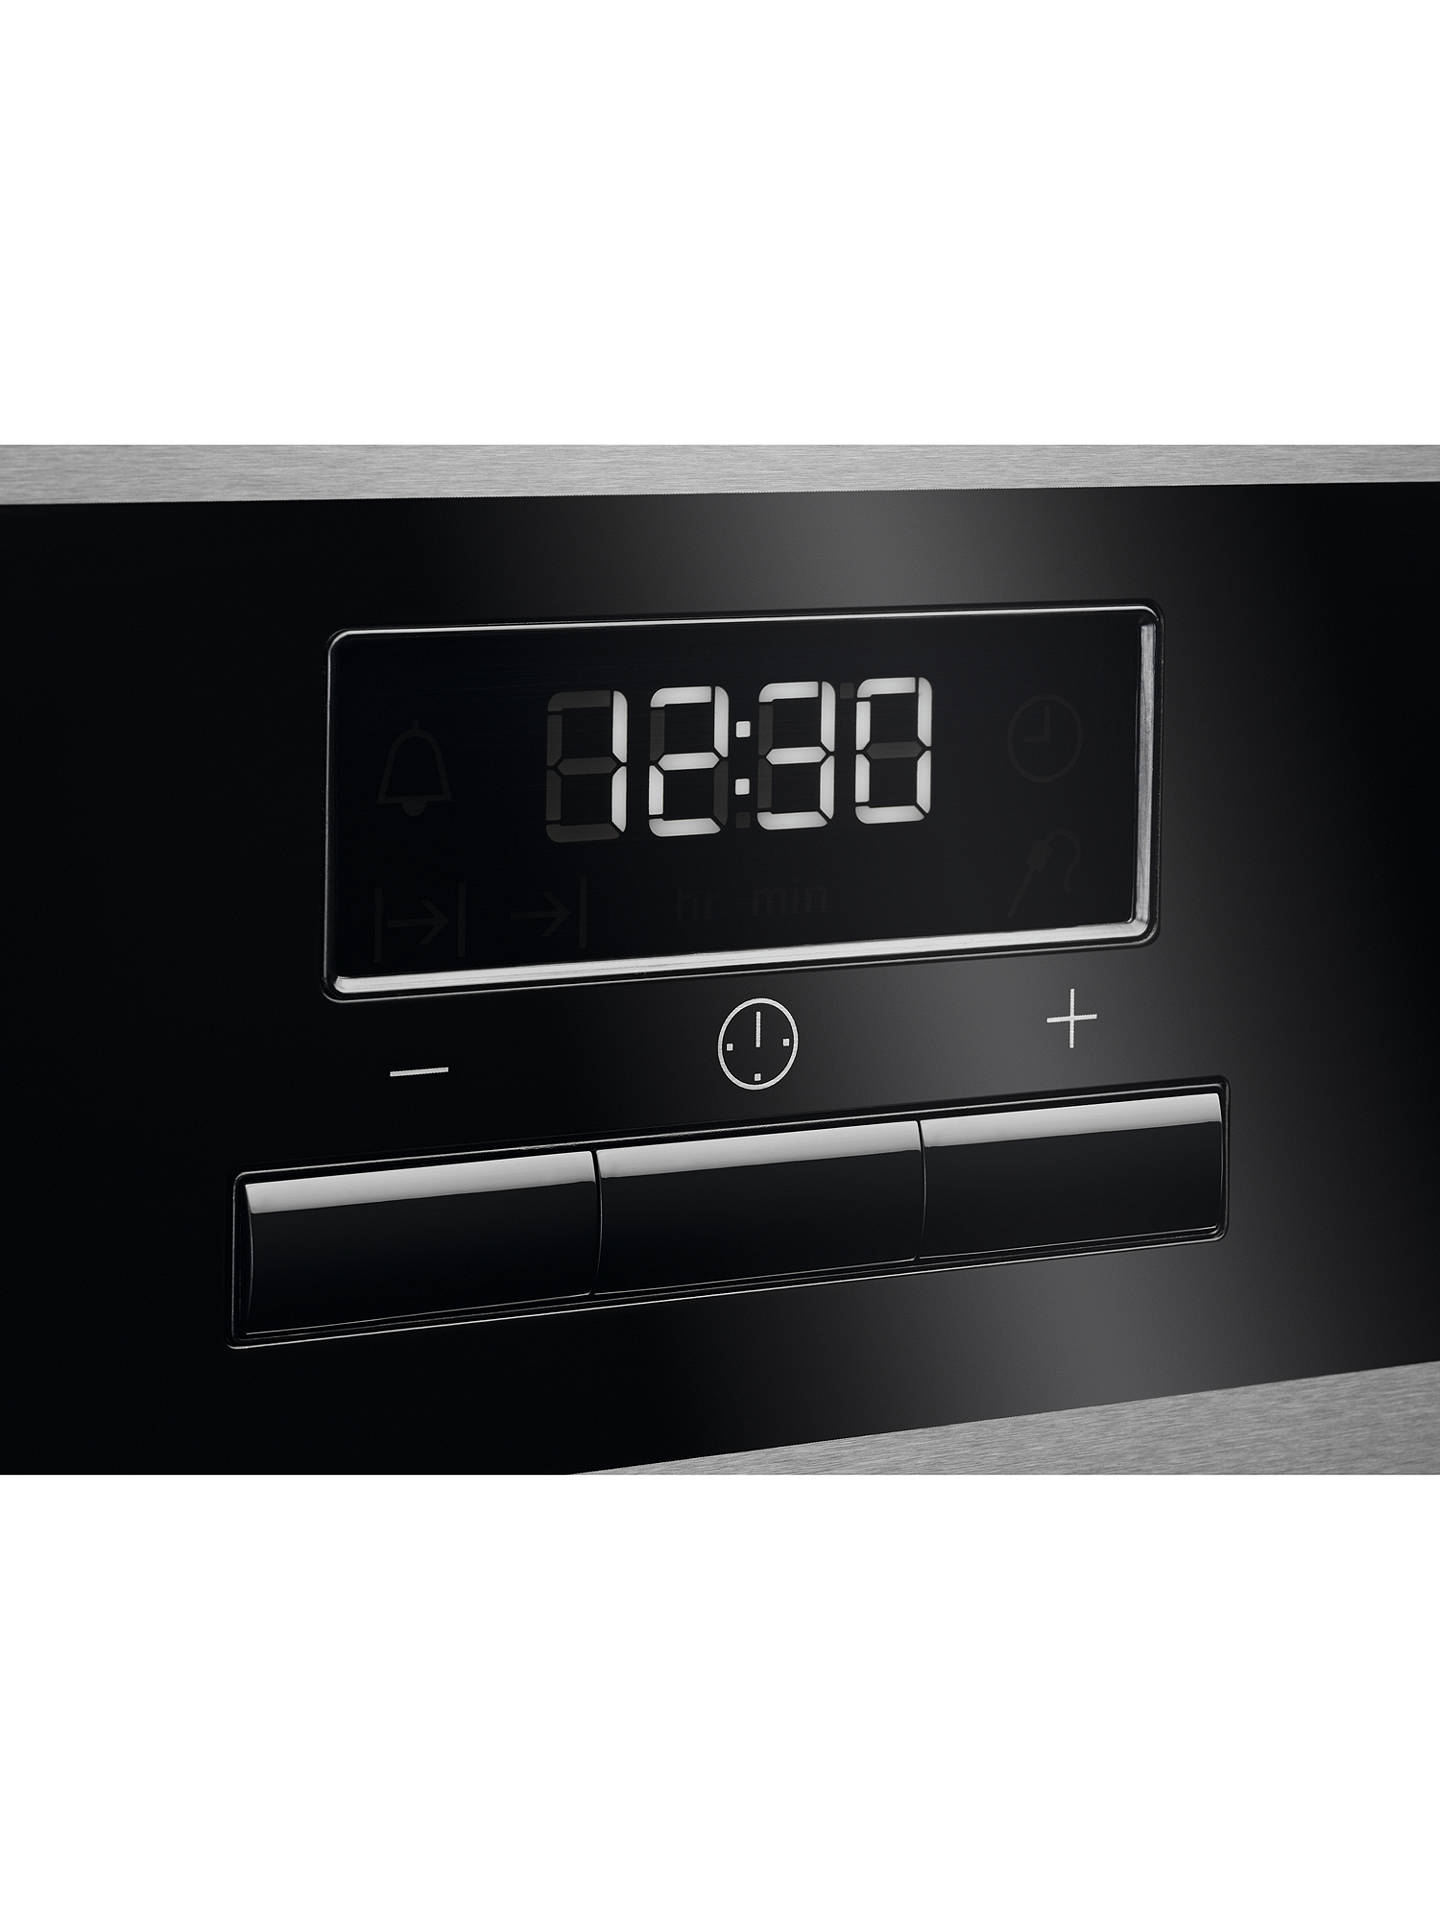 BuyAEG DEE431010B Built-In Multifunction Double Electric Oven, Black Online at johnlewis.com